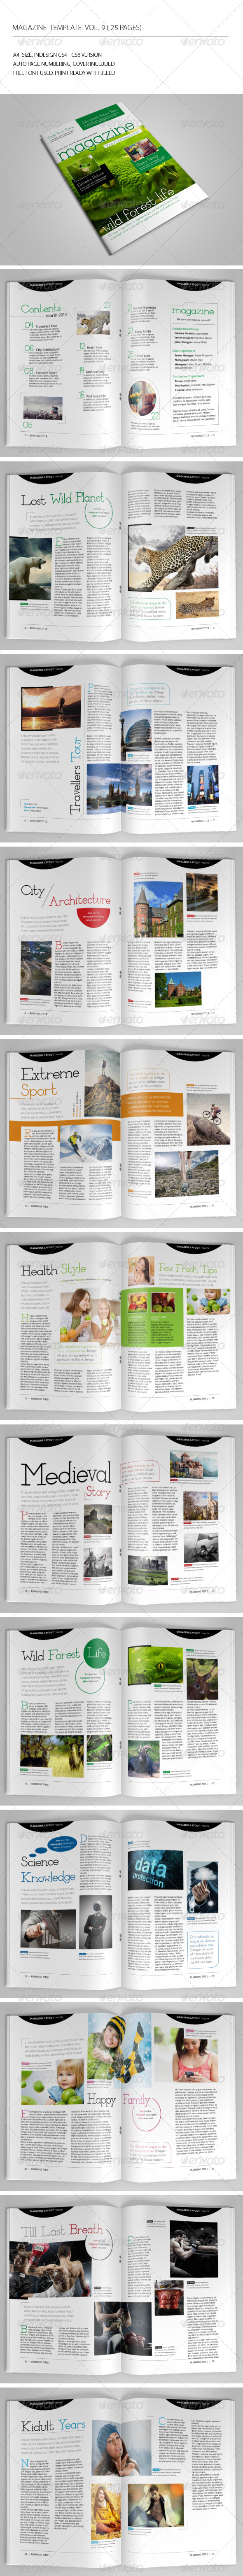 25 Pages Template Magazine Vol9 - Magazines Print Templates